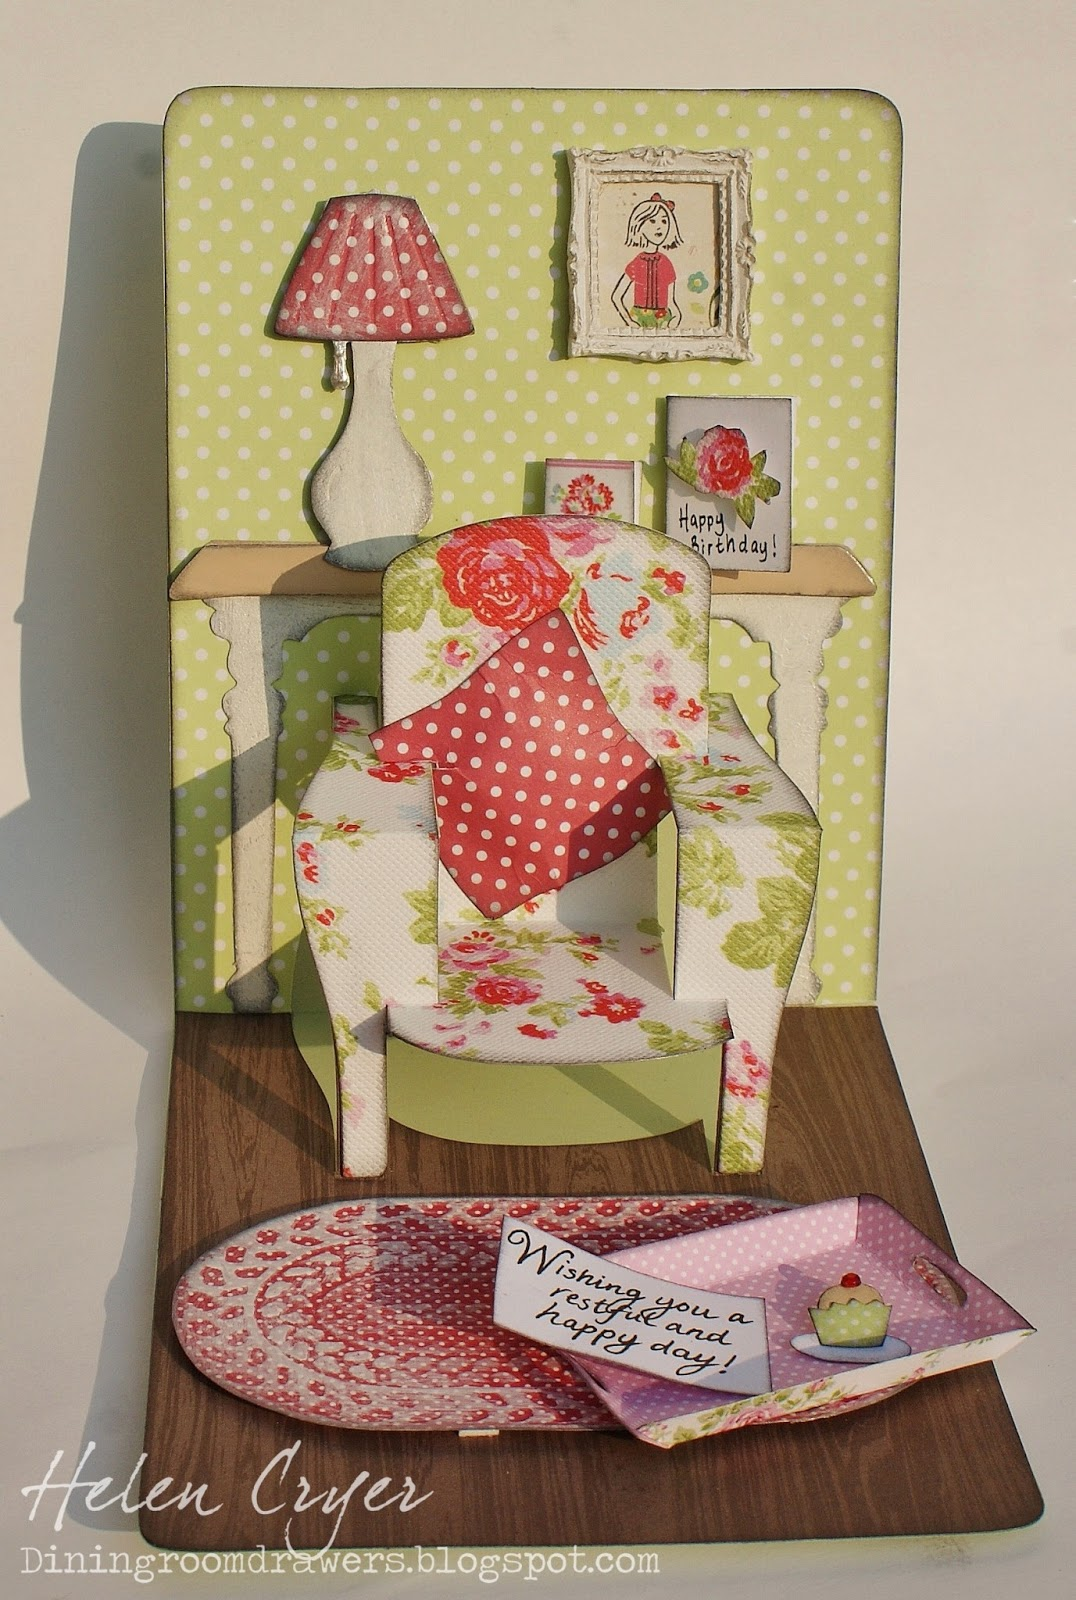 The Dining Room Drawers: Pop 'n Cuts 3-D Chair card - Fauteuil Pop Up